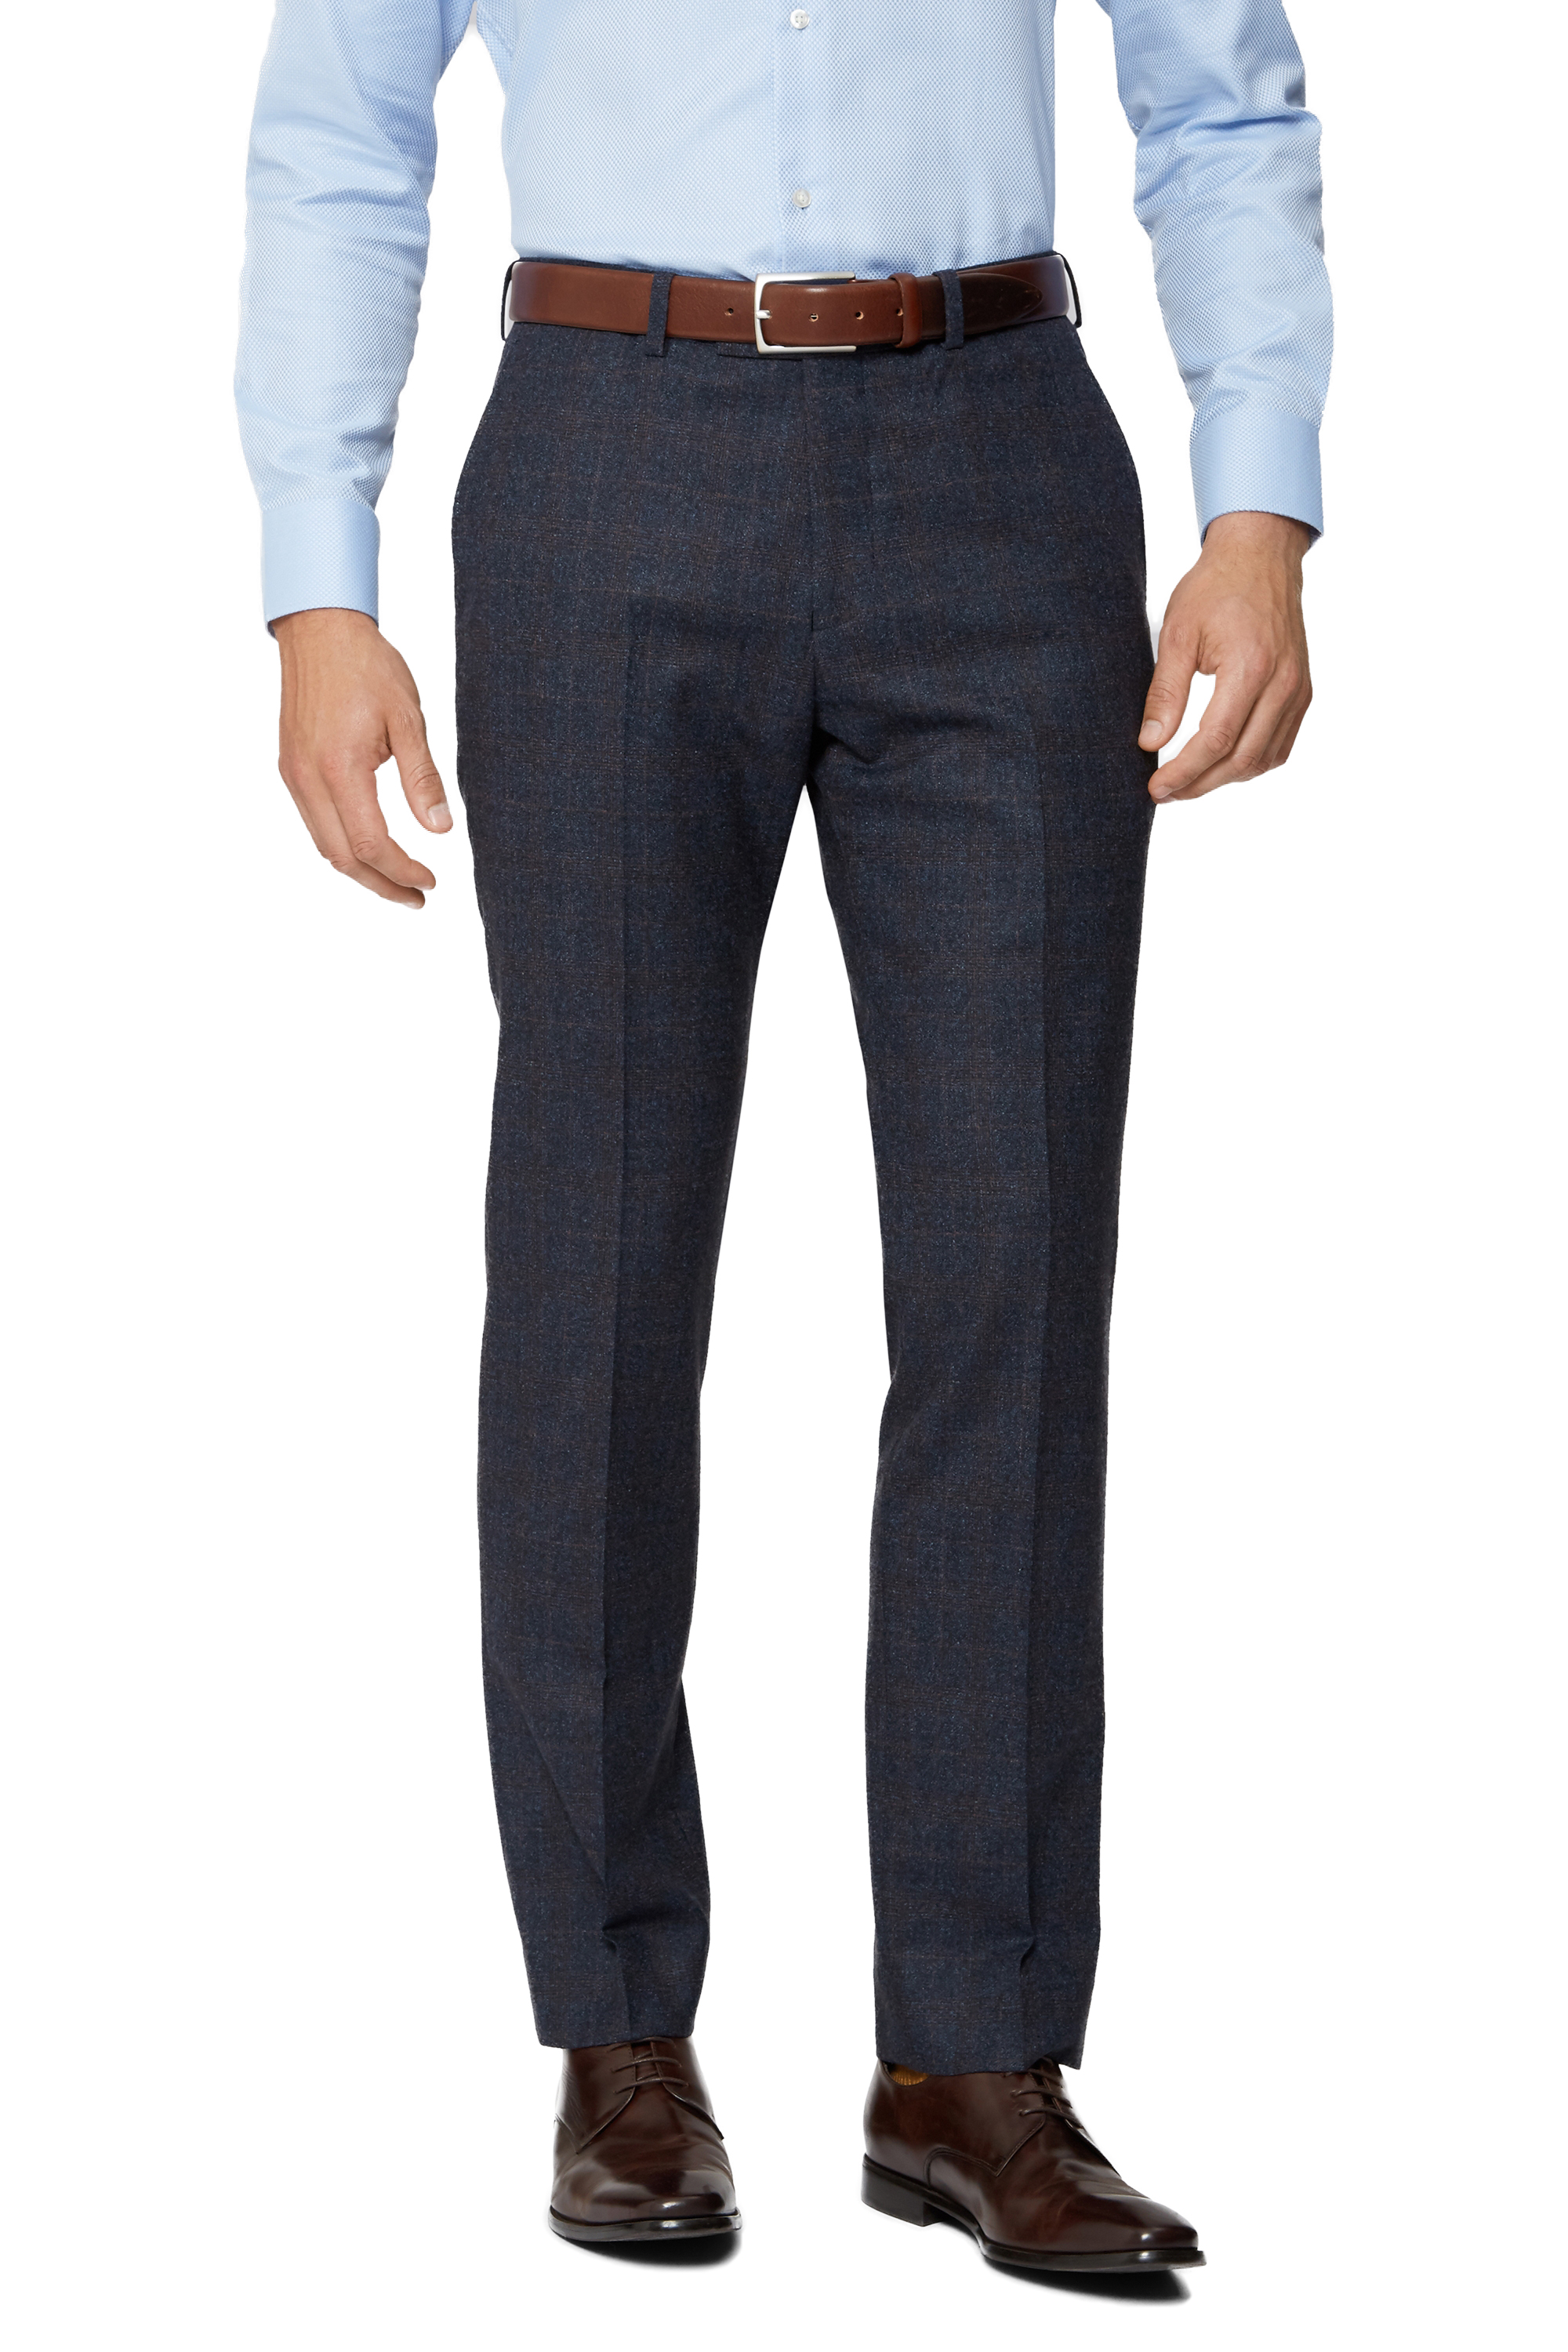 regualr fit trousers - Blue Cerruti GLKhBeF